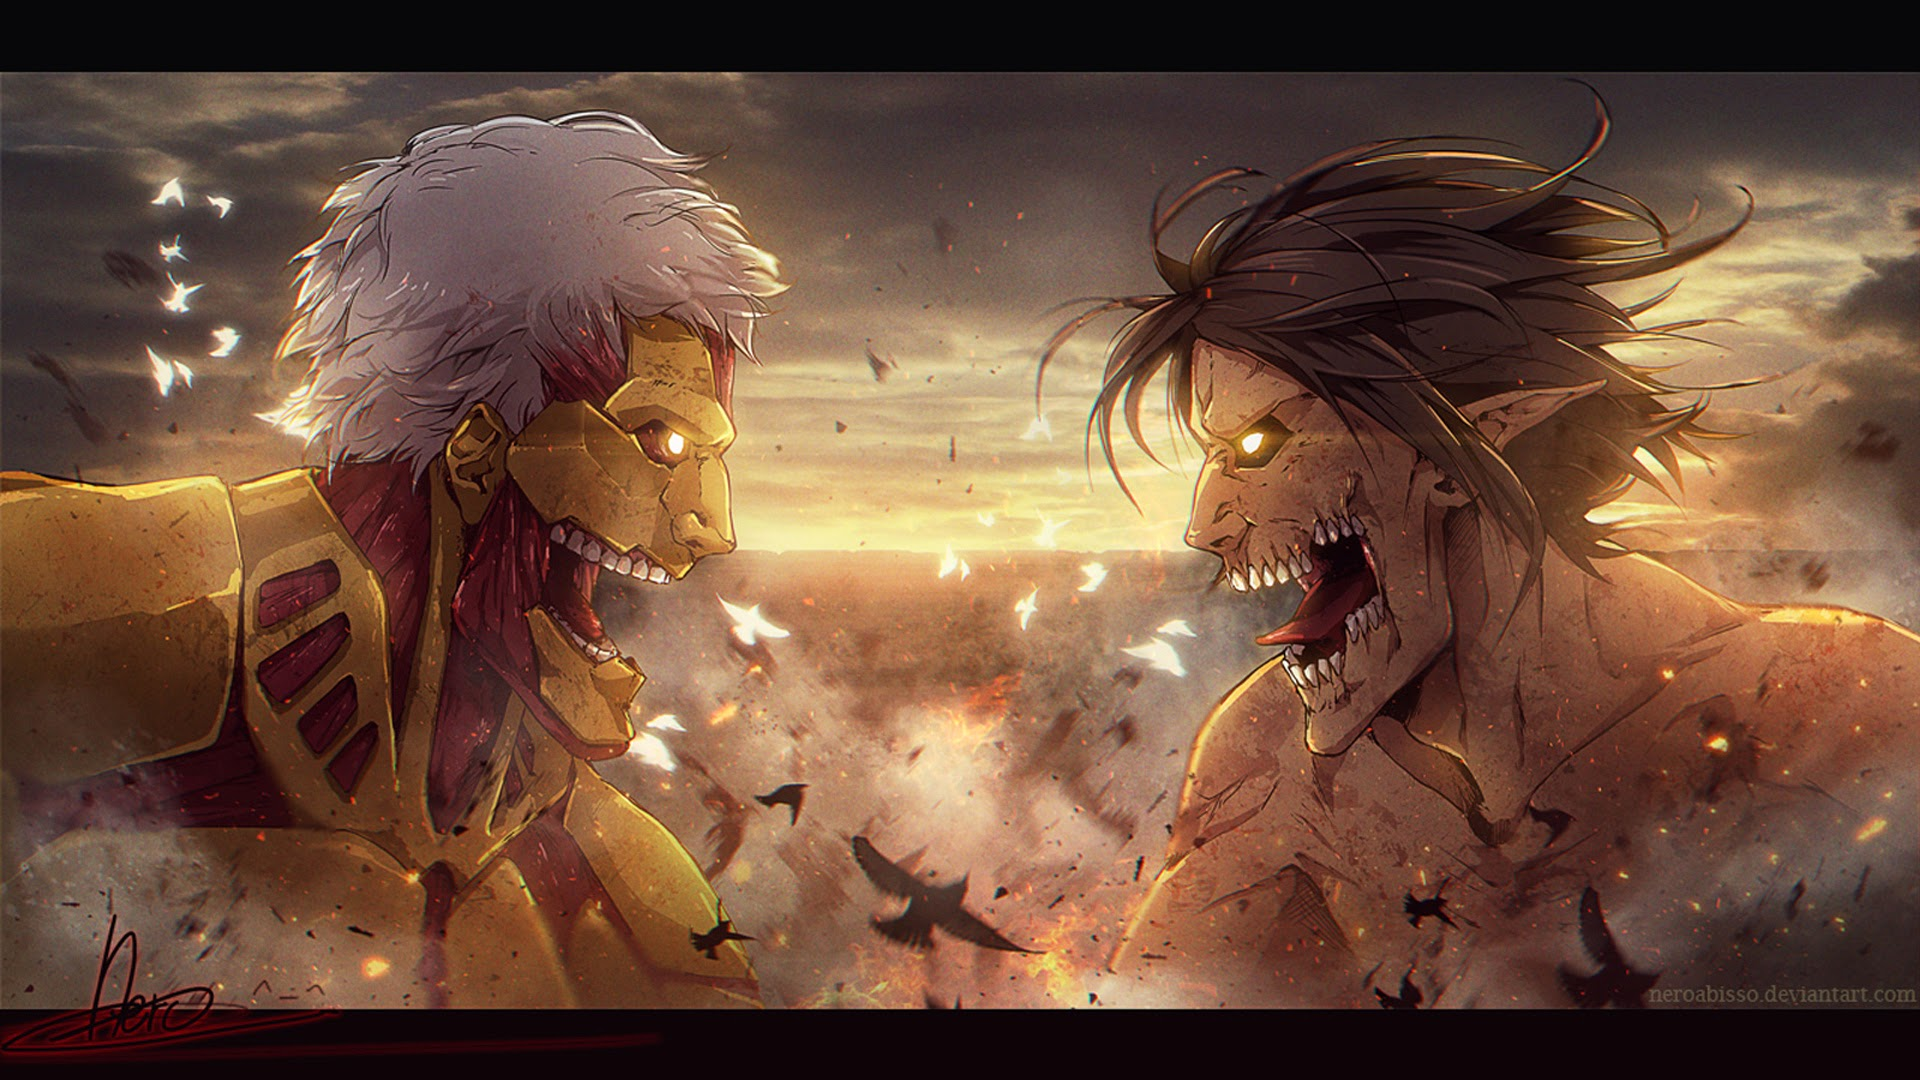 armored titan vs rogue titan 27 wallpaper hd